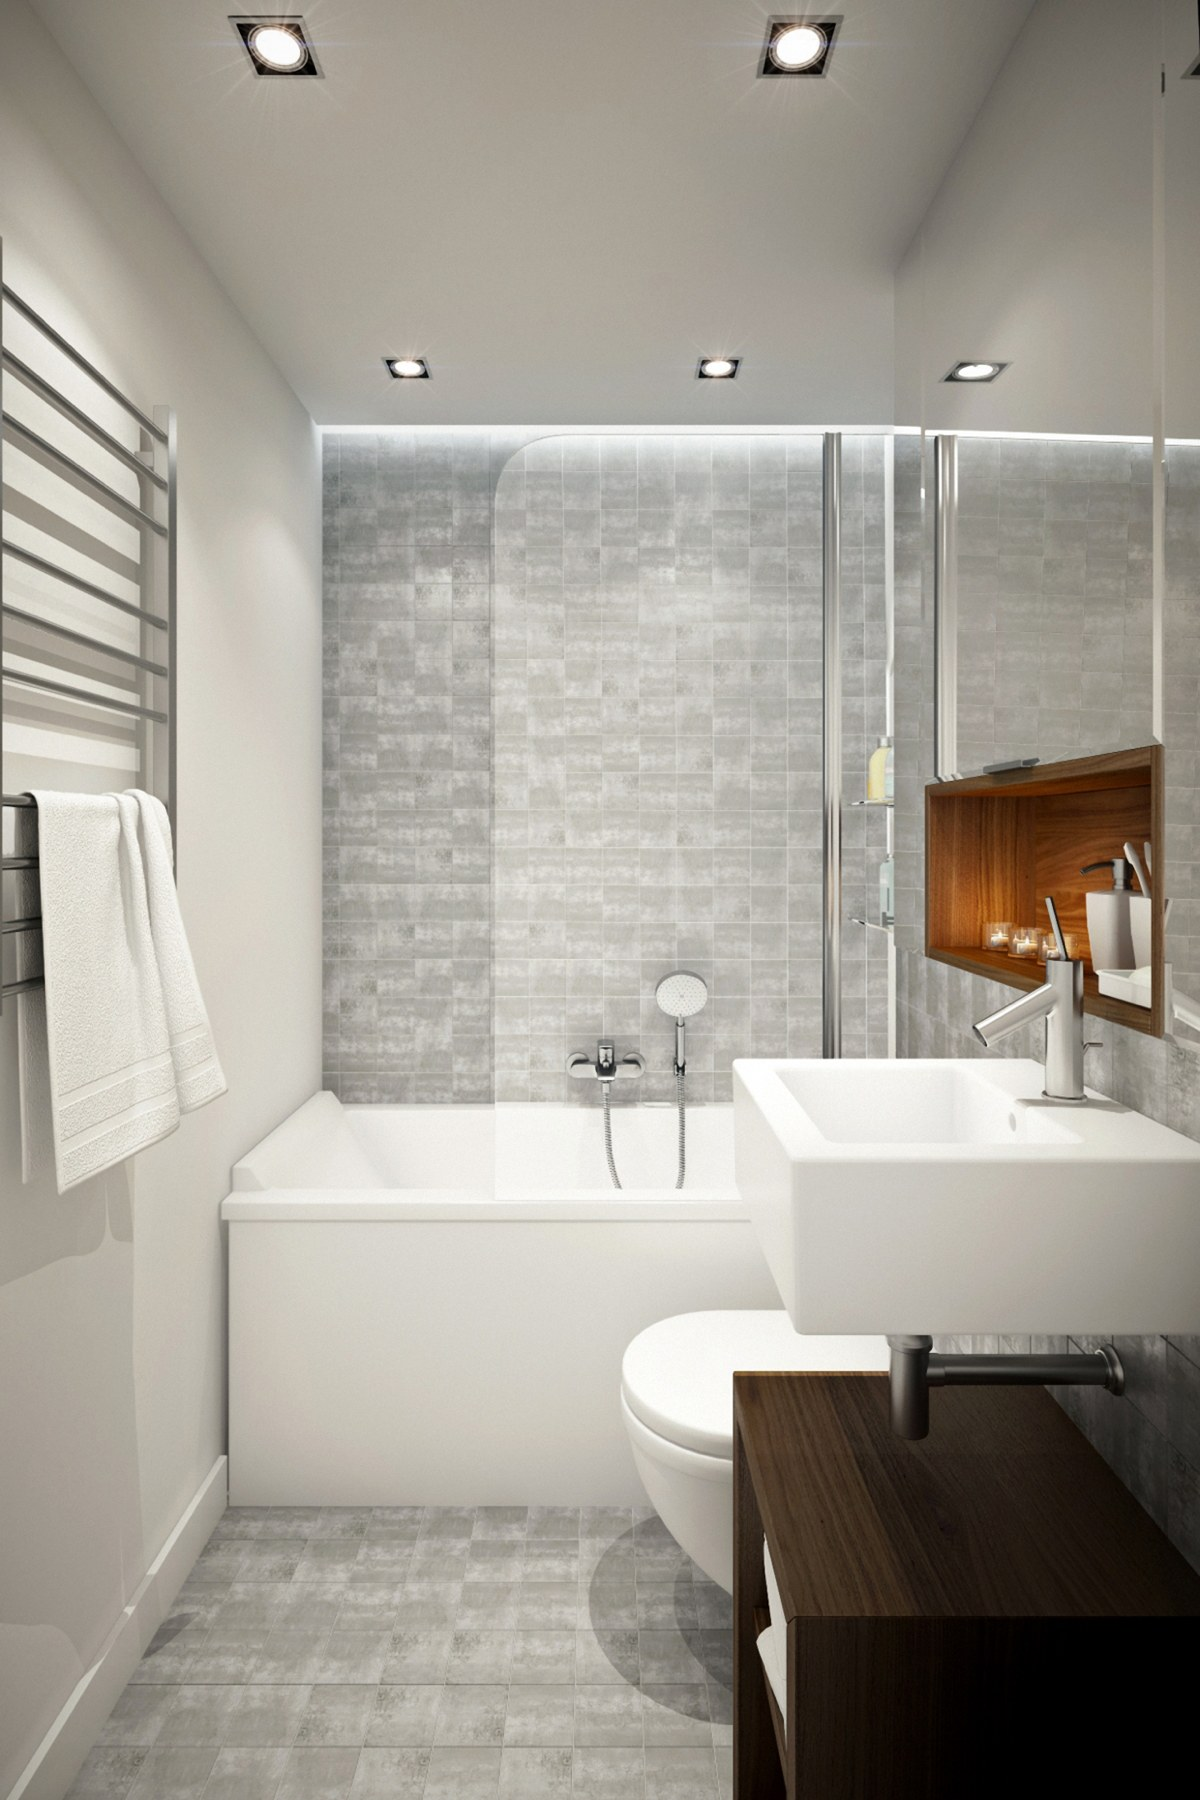 Urban bathroom design